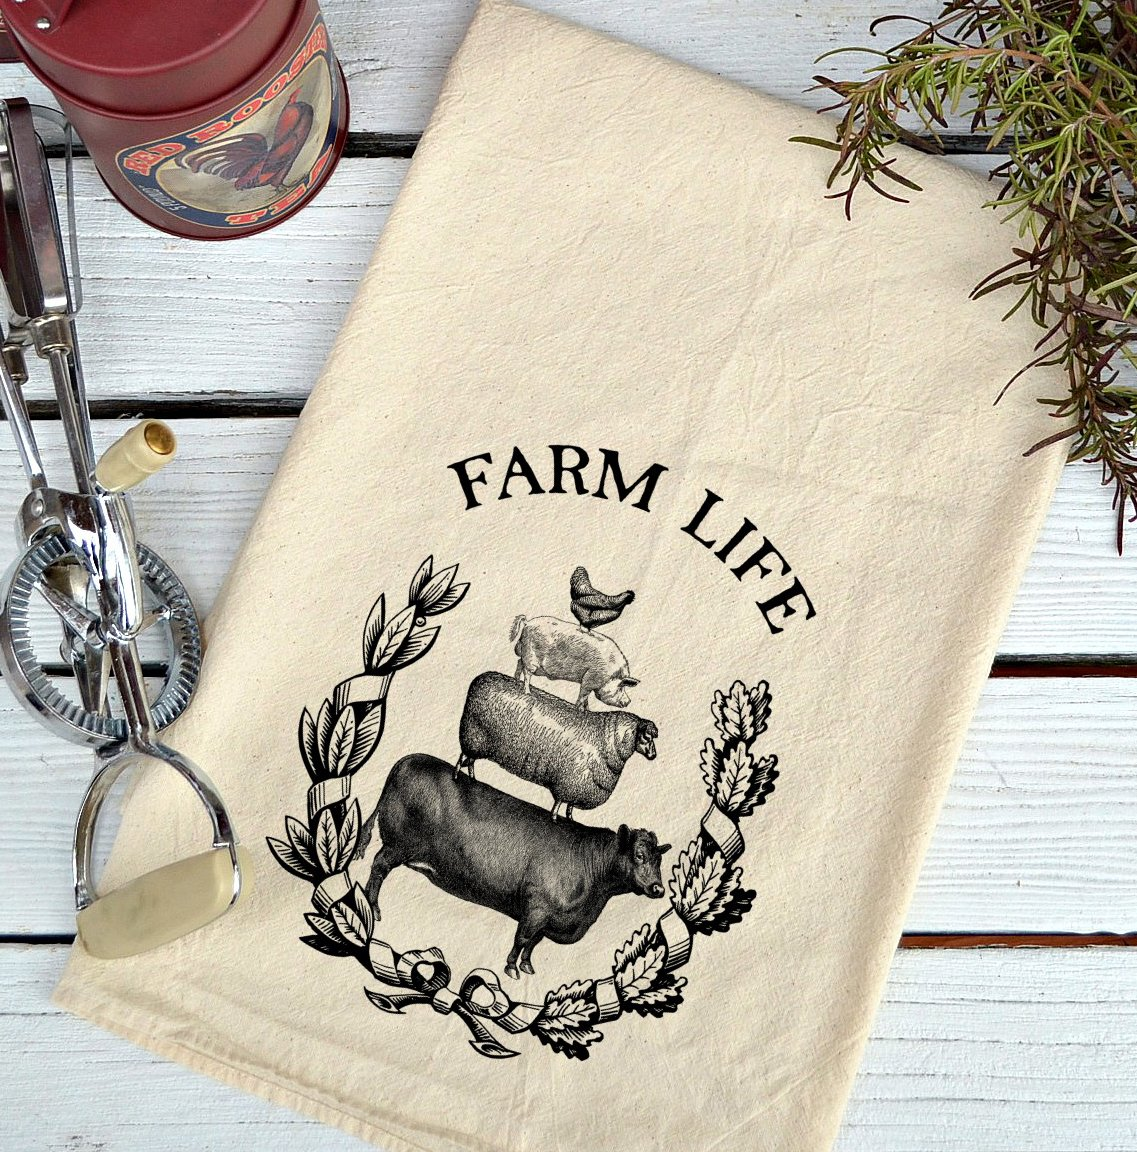 Farmhouse Natural Flour Sack Farm Life Country Kitchen Towel by